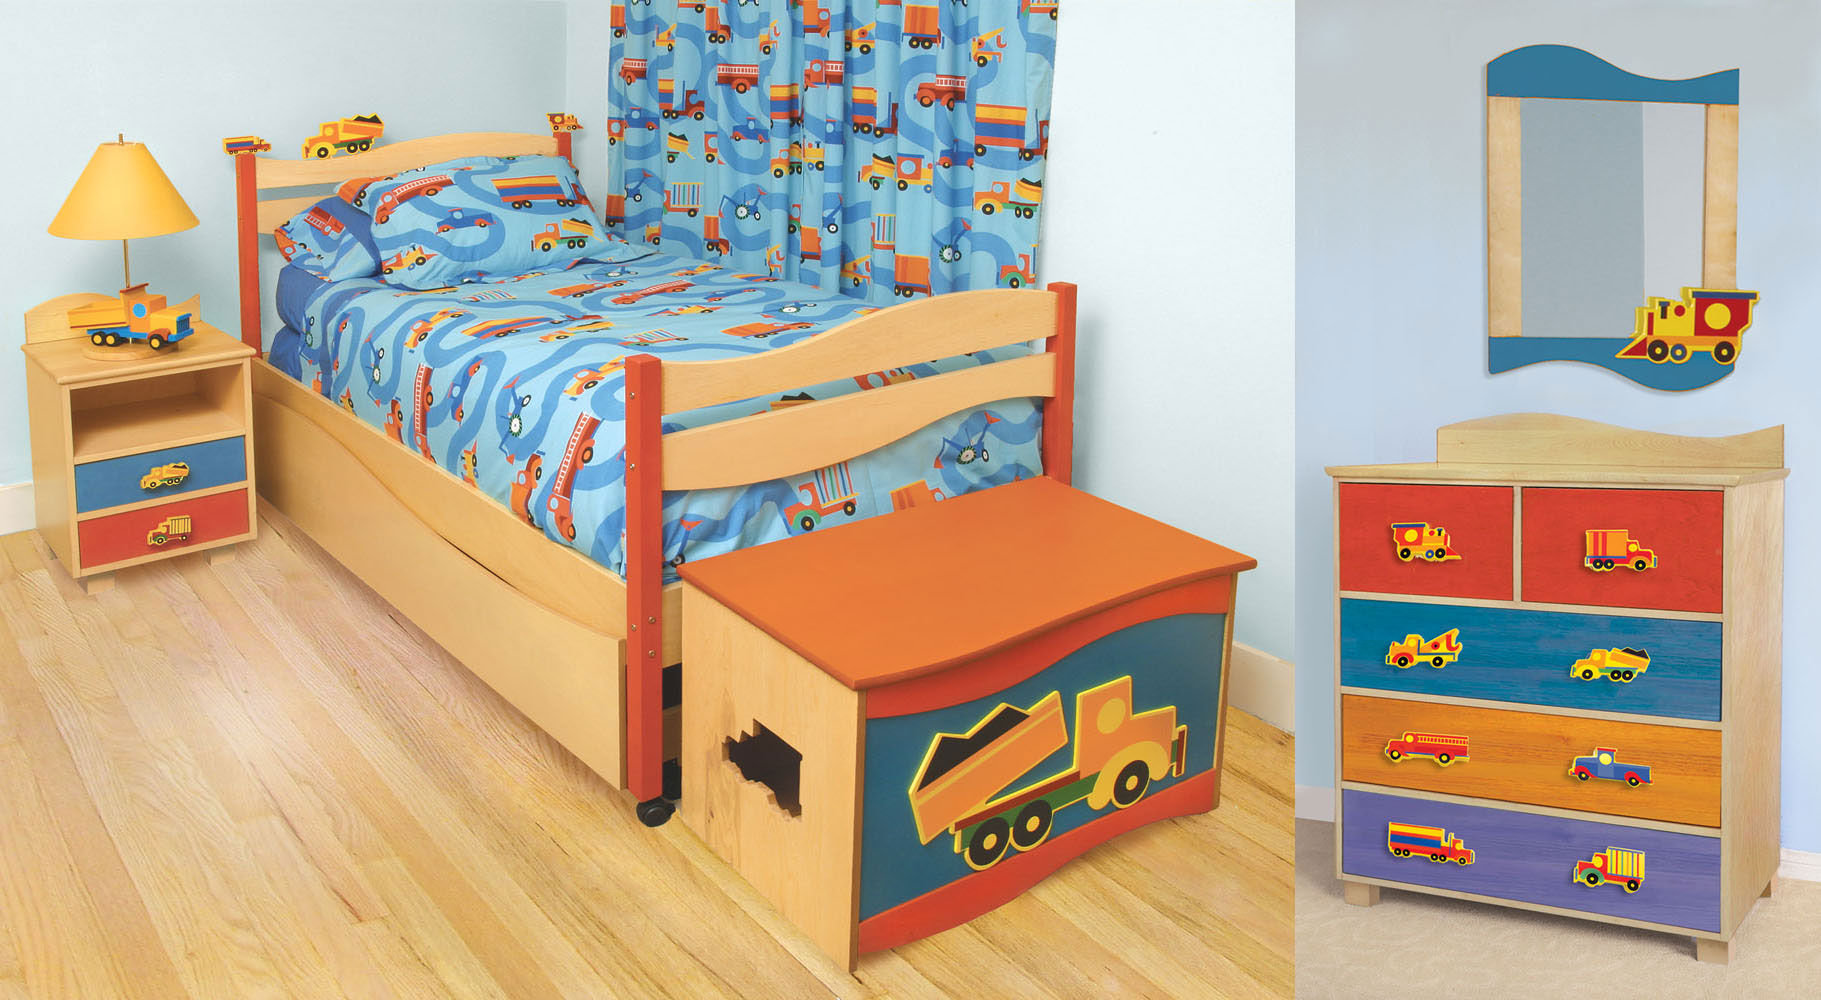 1 411 room magic boys like trucks bedroom set kids bed for Kids bedroom furniture sets